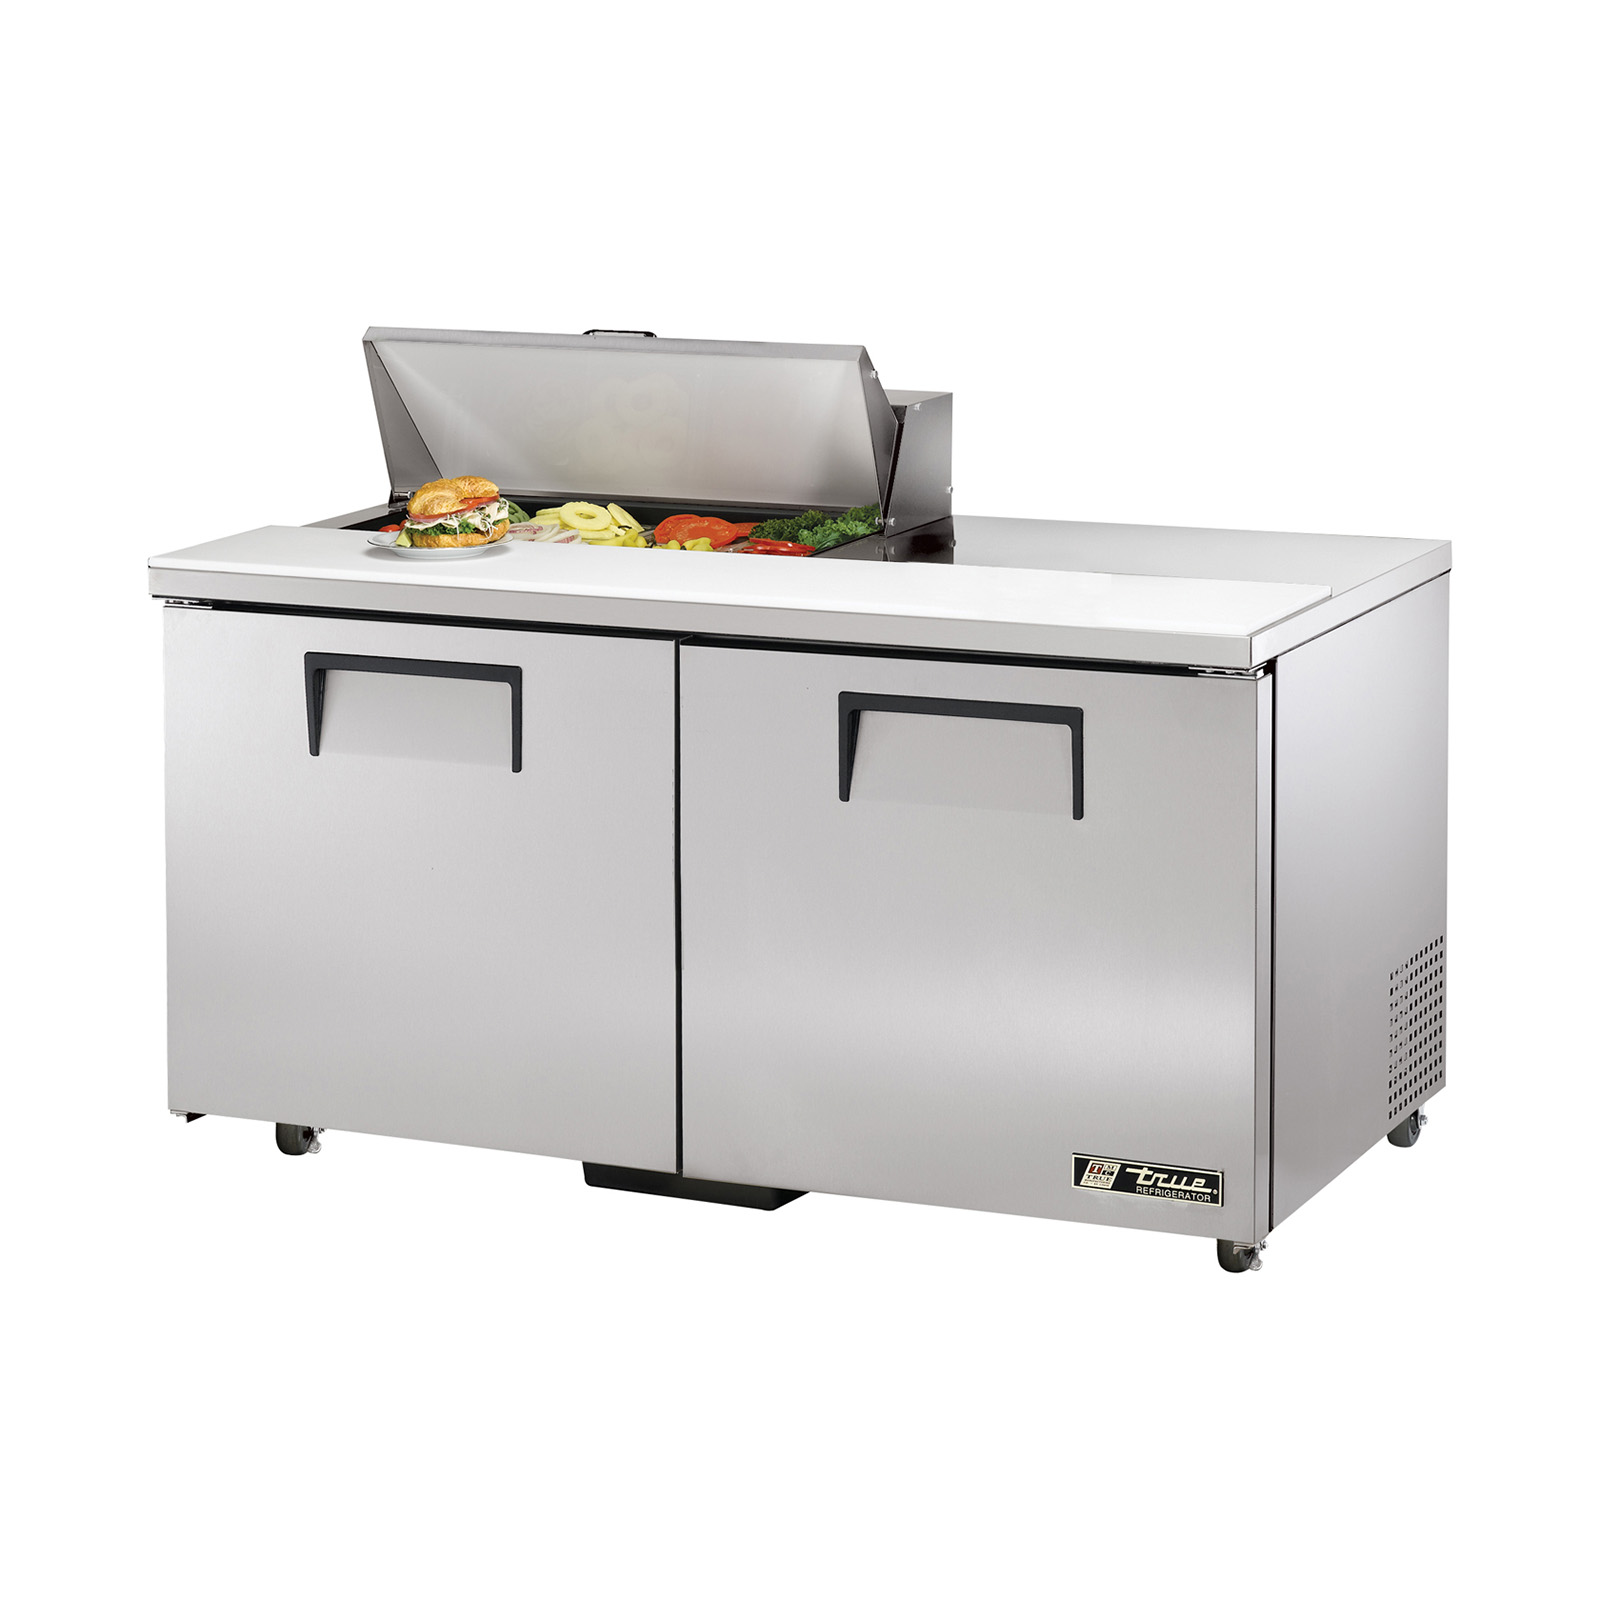 TSSU-60-08-ADA True - ADA Compliant Sandwich/Salad Unit (8) 1/6 size (4